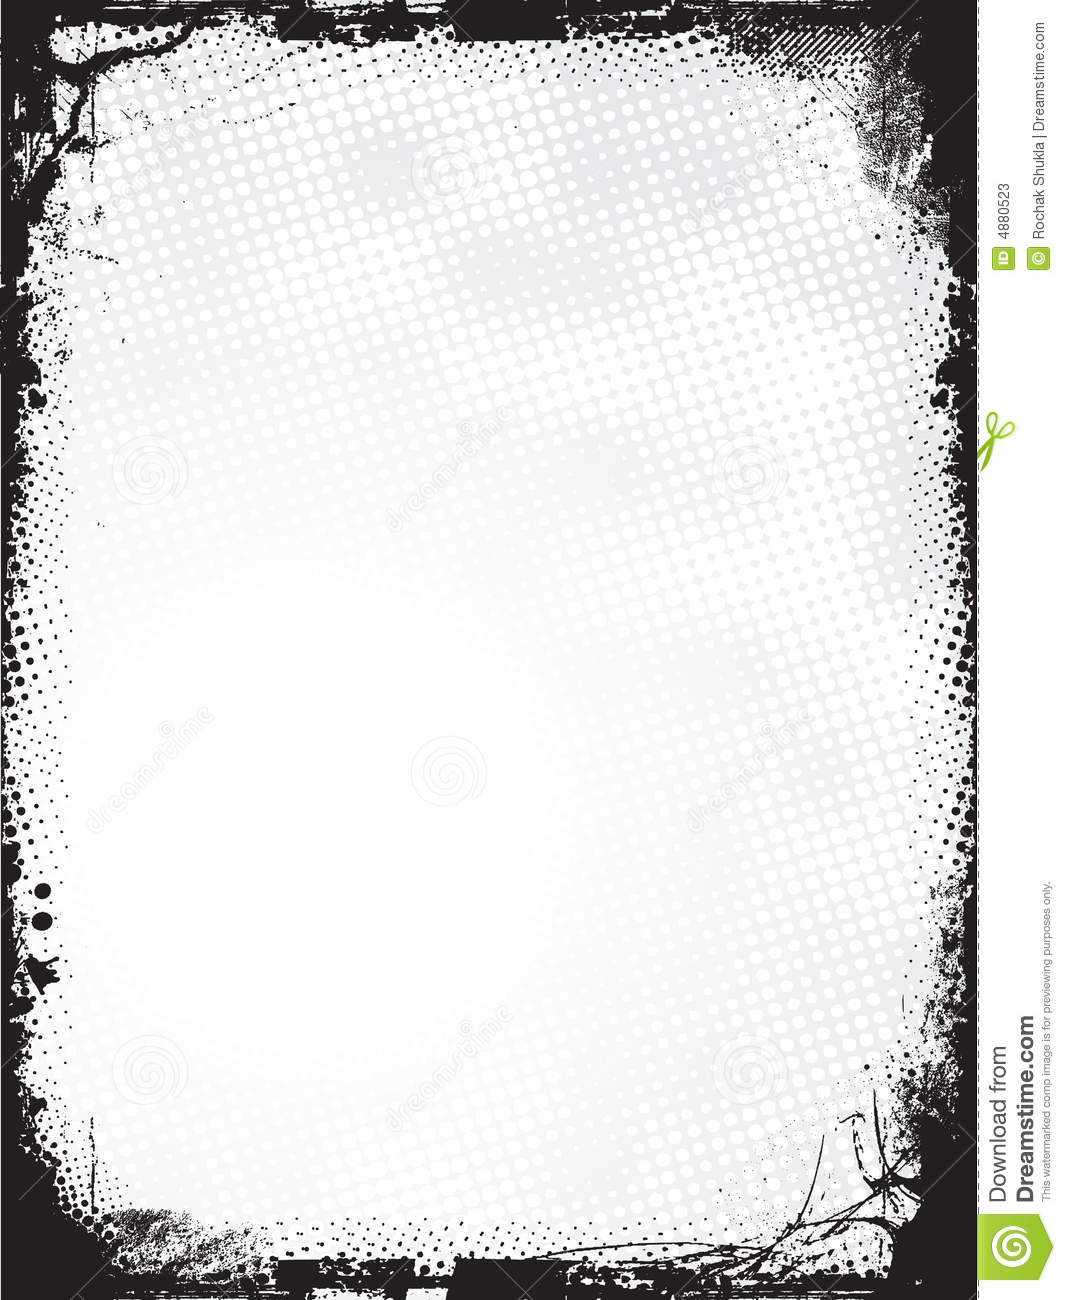 Brush photoshop free download ink